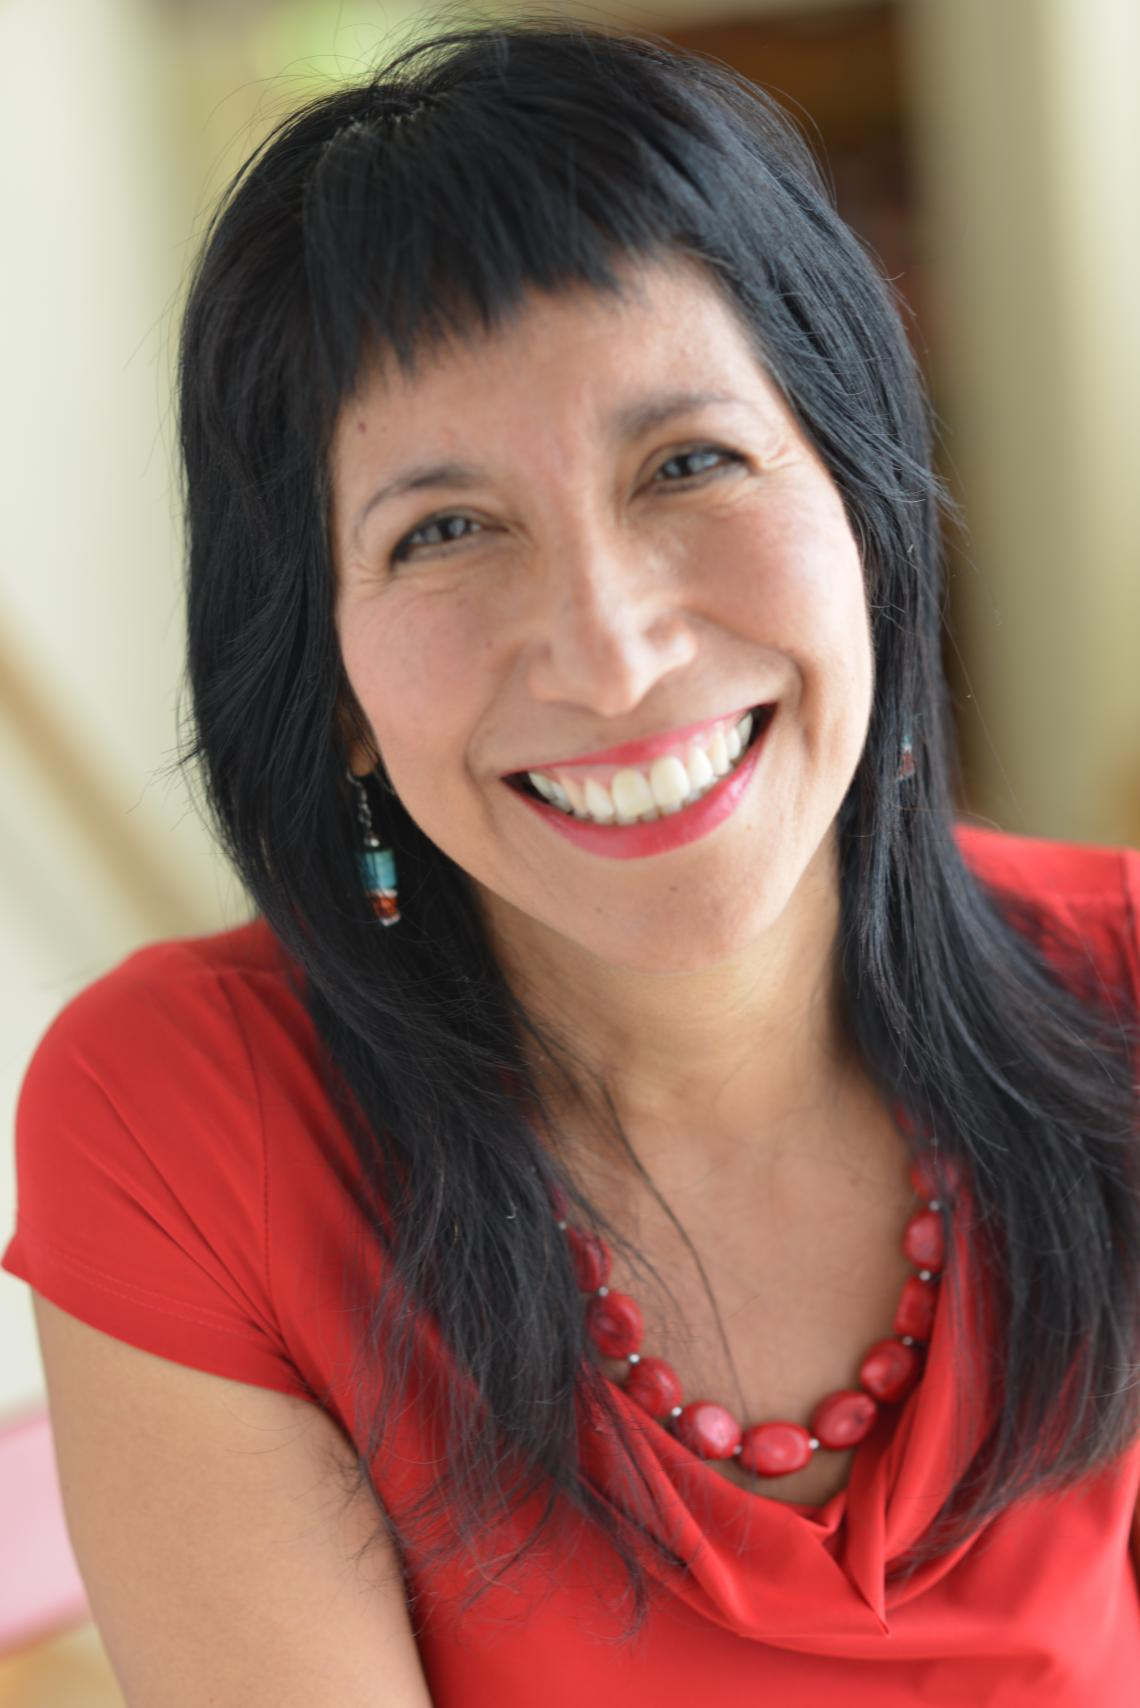 """""""I grew up in a family of traditional healers and it has been part of my life – since I was in my mother's womb,"""" says Patrisia Gonzales, author of """"Traditional Indian Medicine: American Indian Wellness,"""" released this year."""